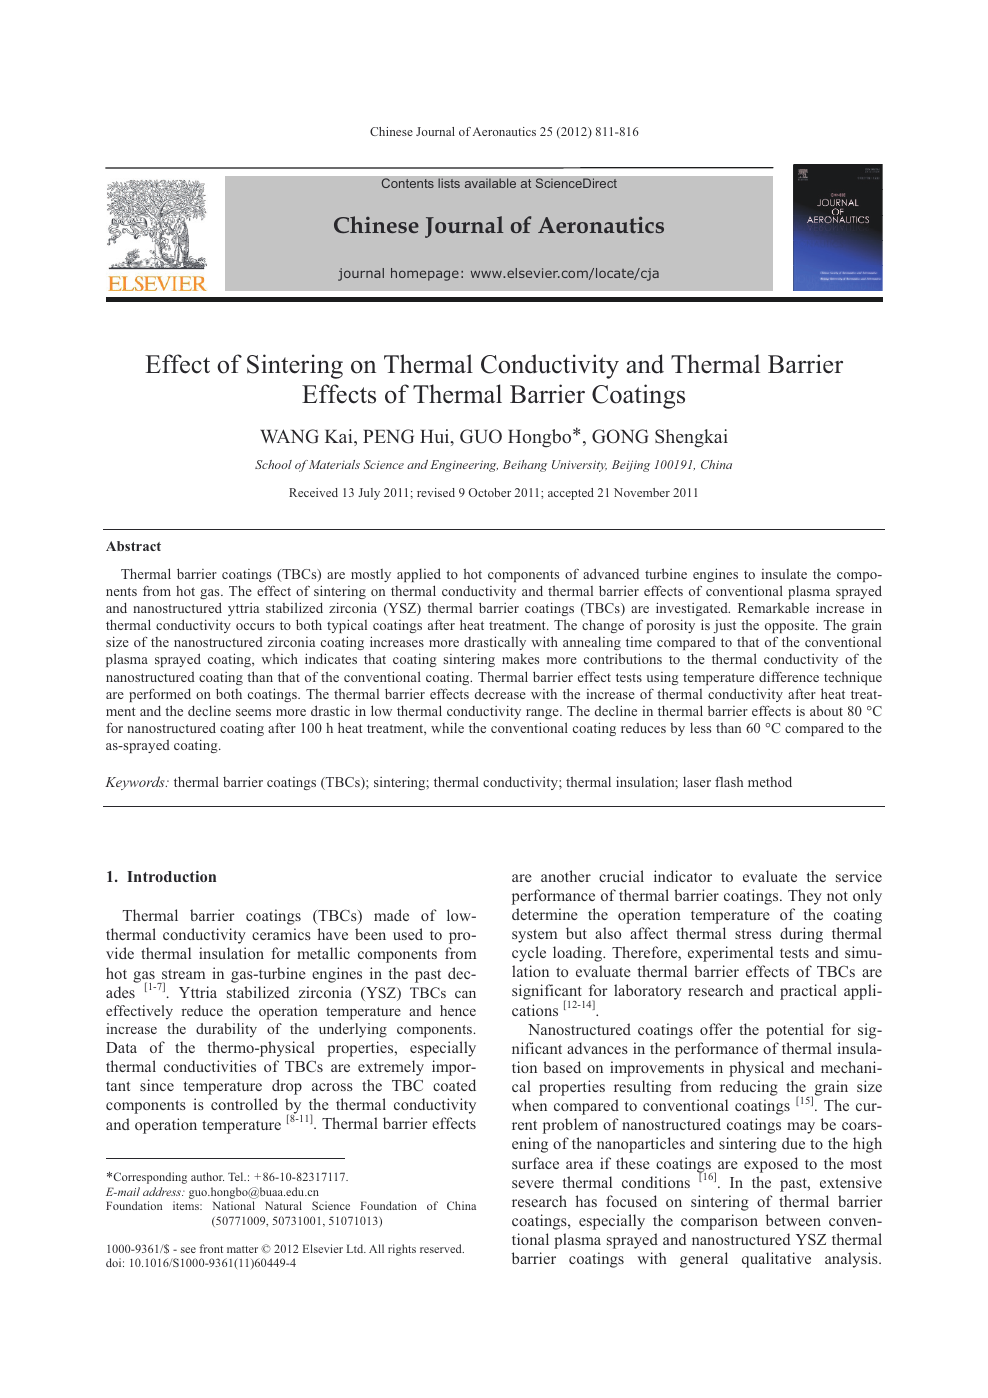 Effect of Sintering on Thermal Conductivity and Thermal